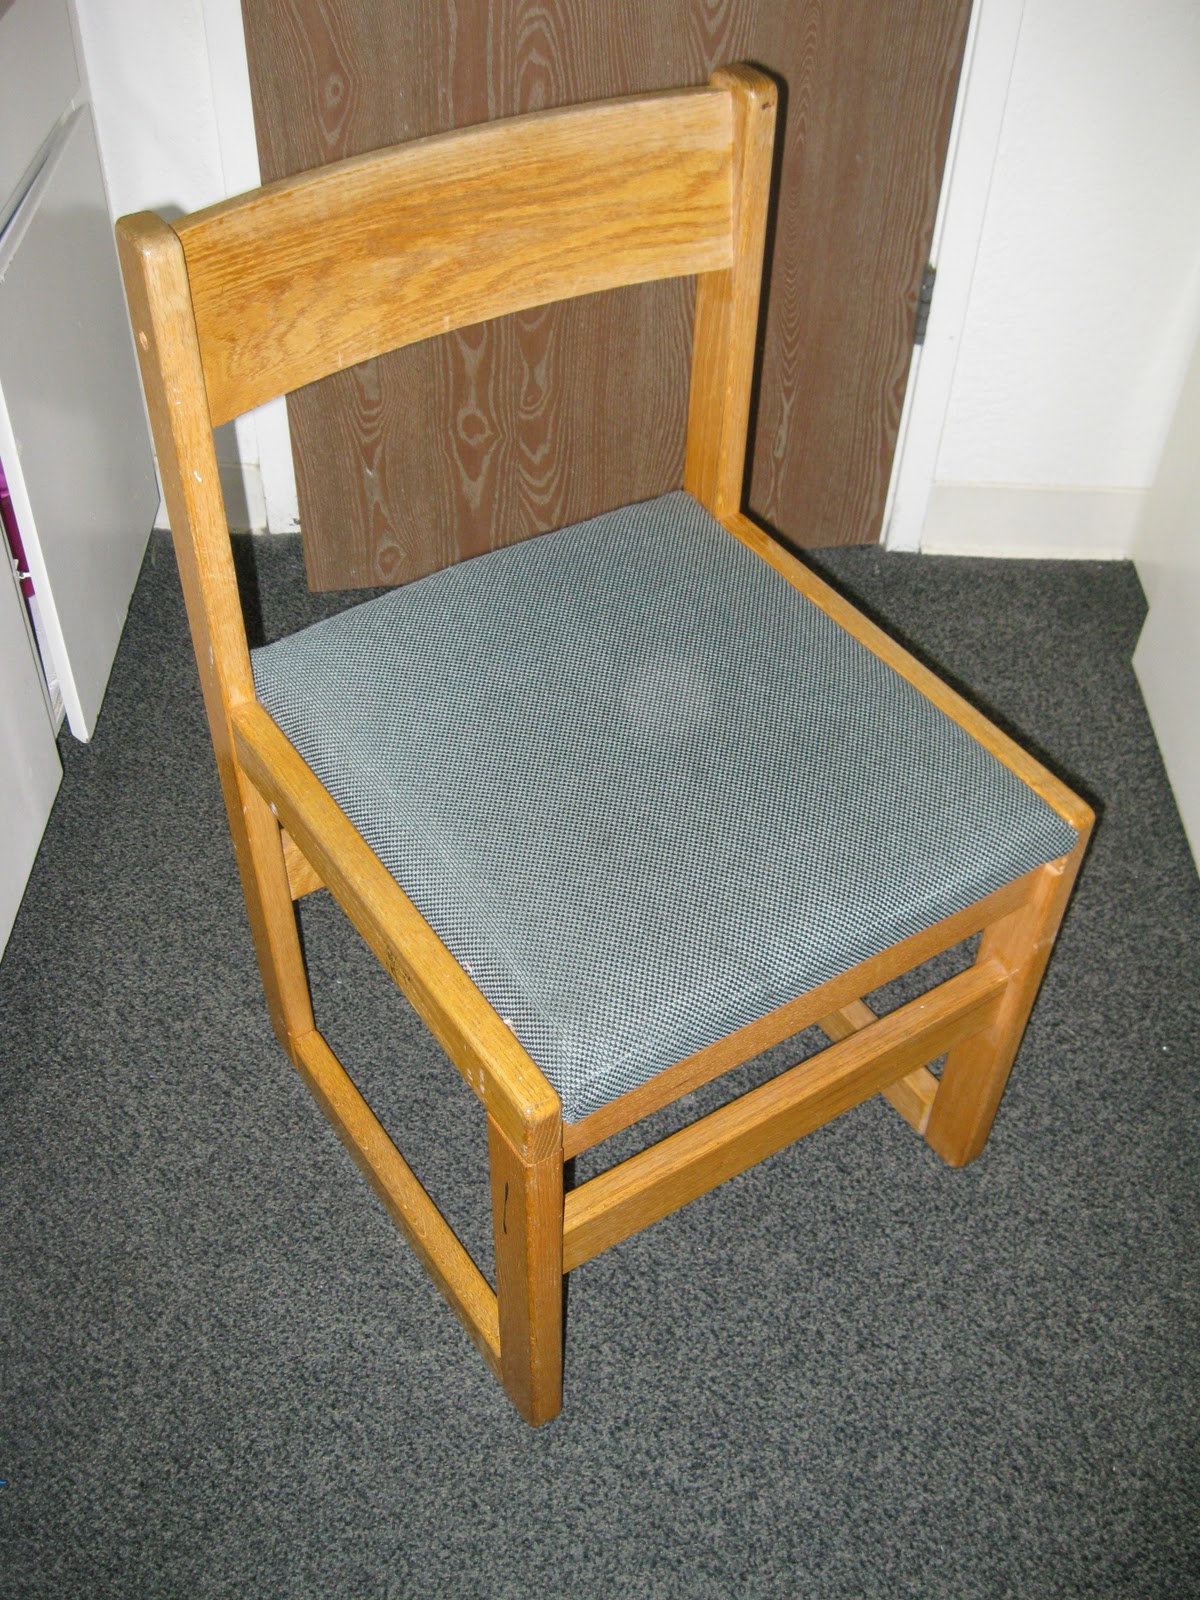 5 Areas Of Ergonomics: Dorm Room Desk Chair Part 50